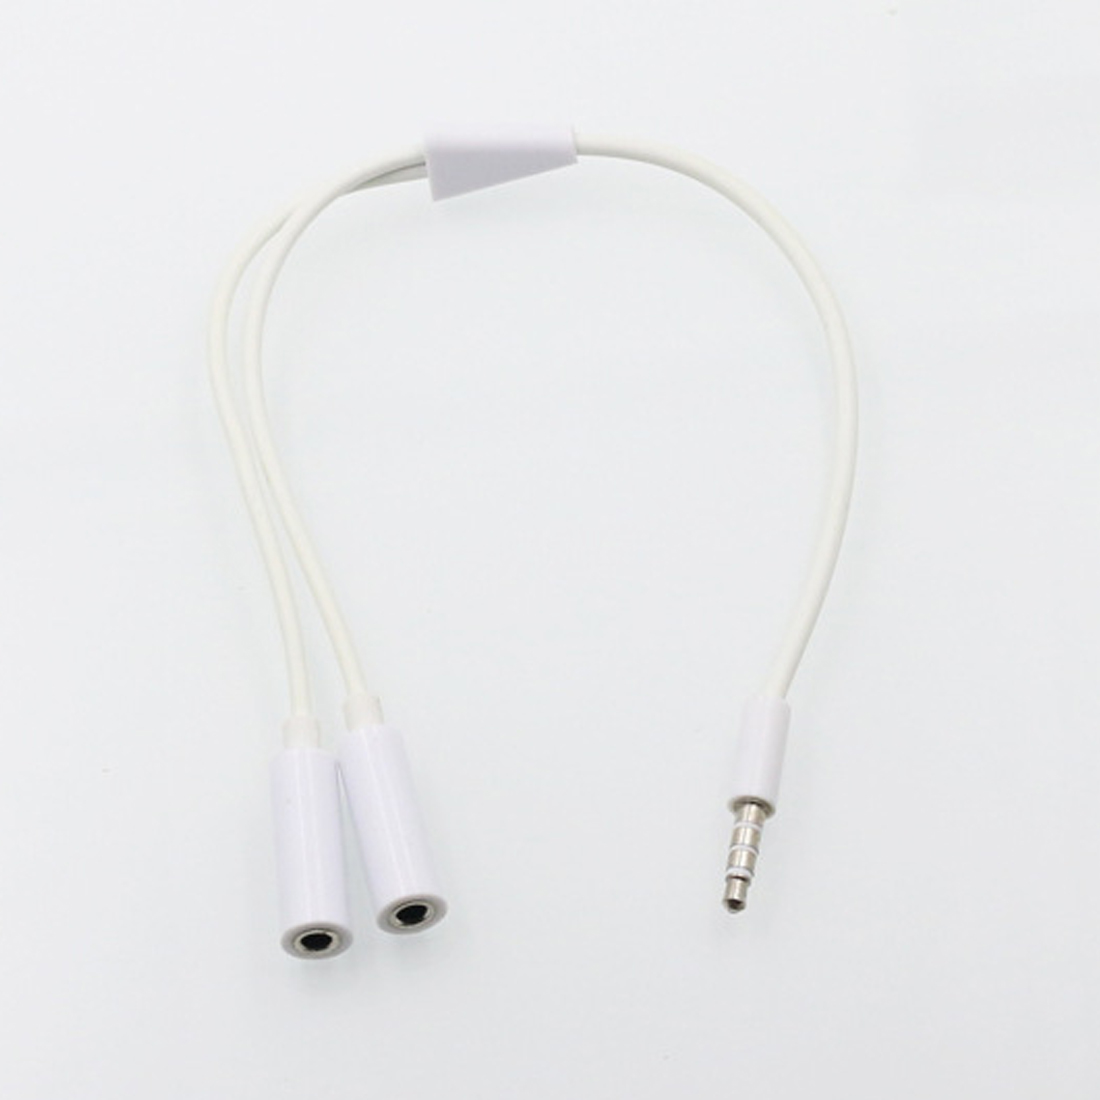 Audio Splitter 3 5mm Cable Earphone Headphone Adapter 1